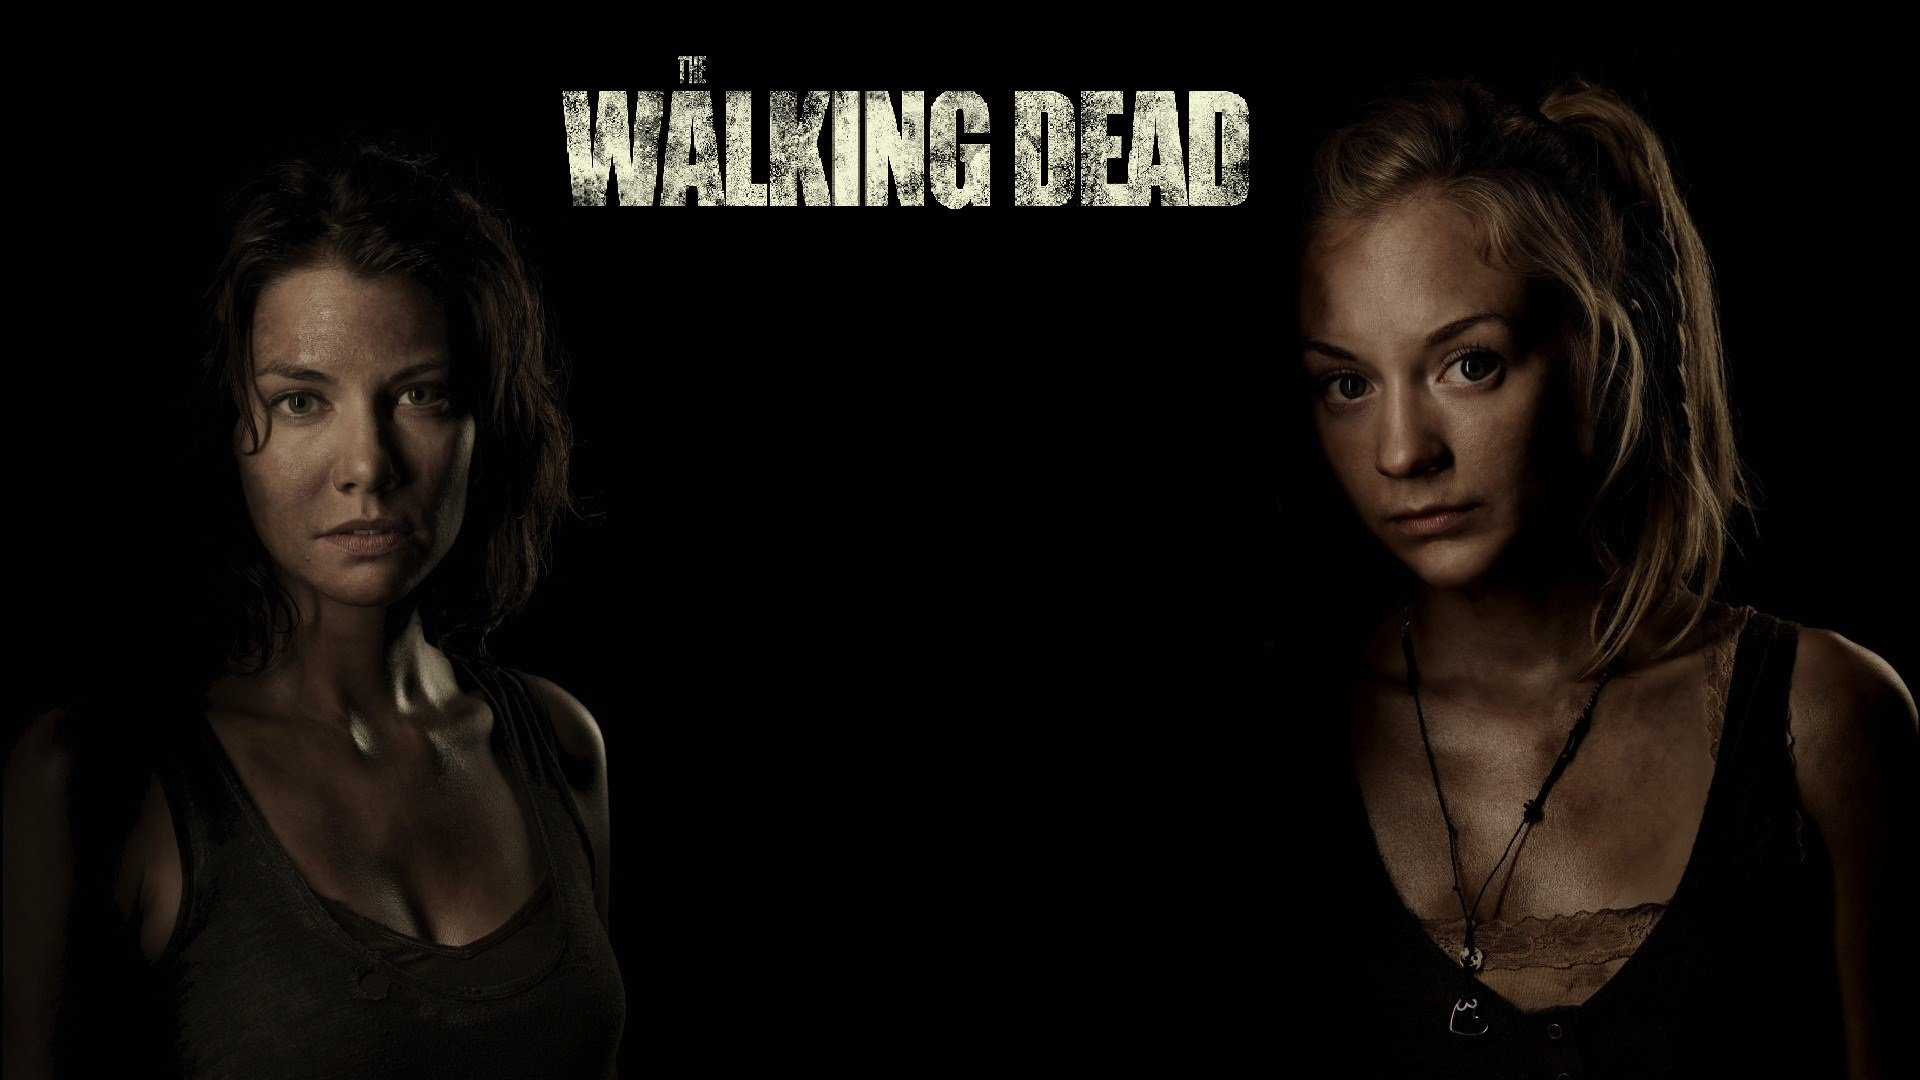 Download hd 1080p The Walking Dead PC wallpaper ID:190199 for free